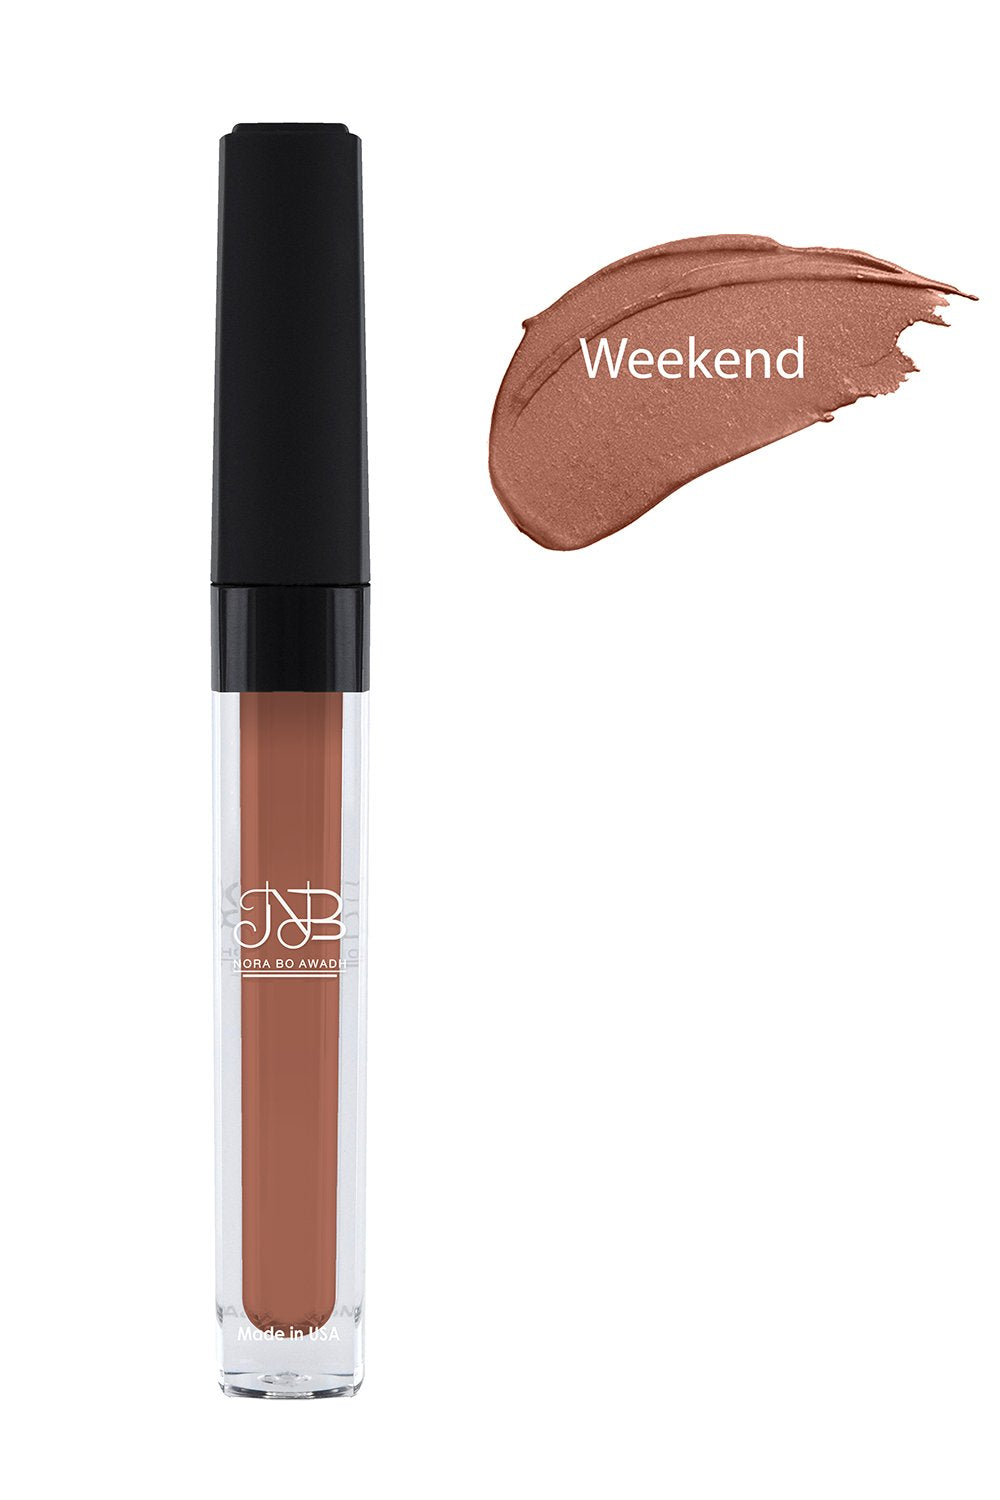 Nora Bo Awadh Weekend Liquid Lipstick